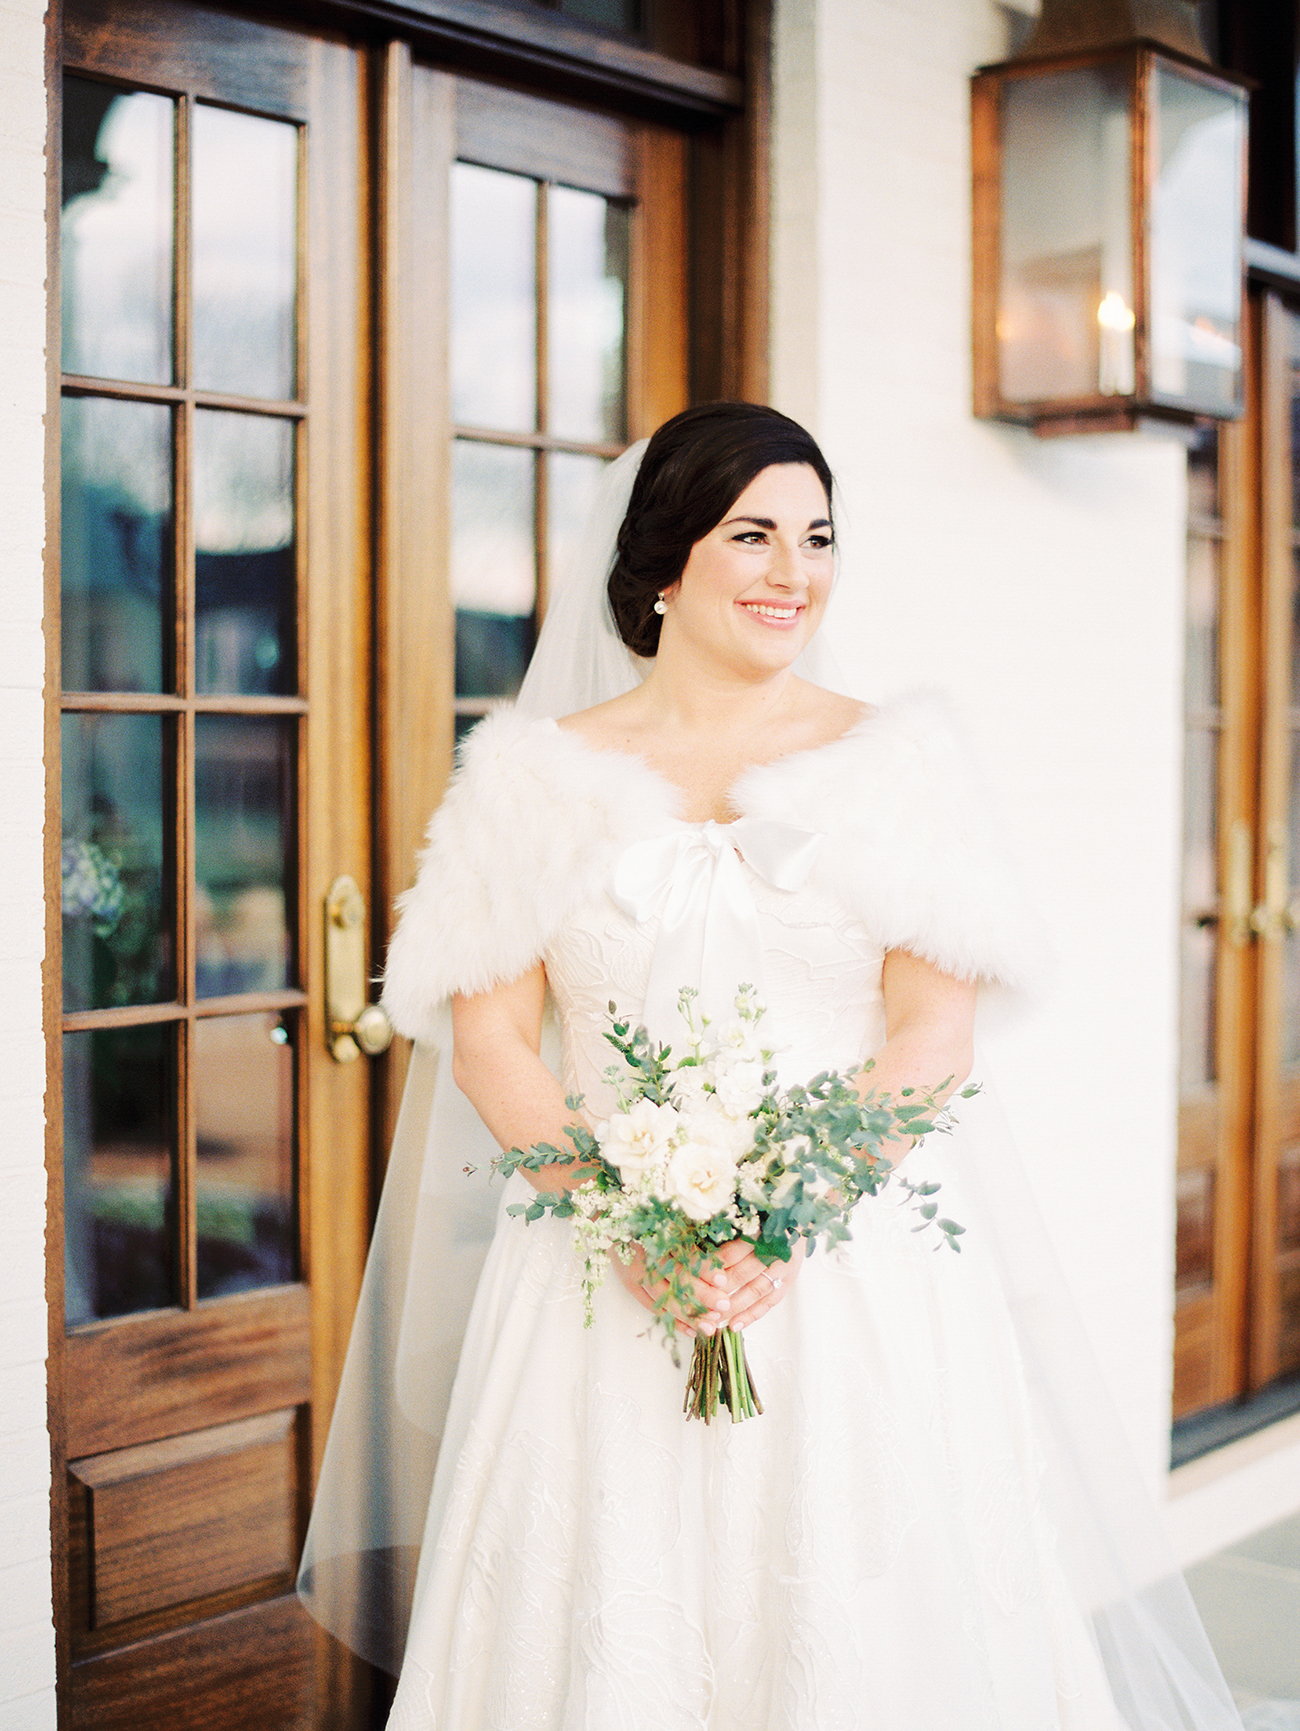 nrp-nancy-ashleydavisbridals-2044